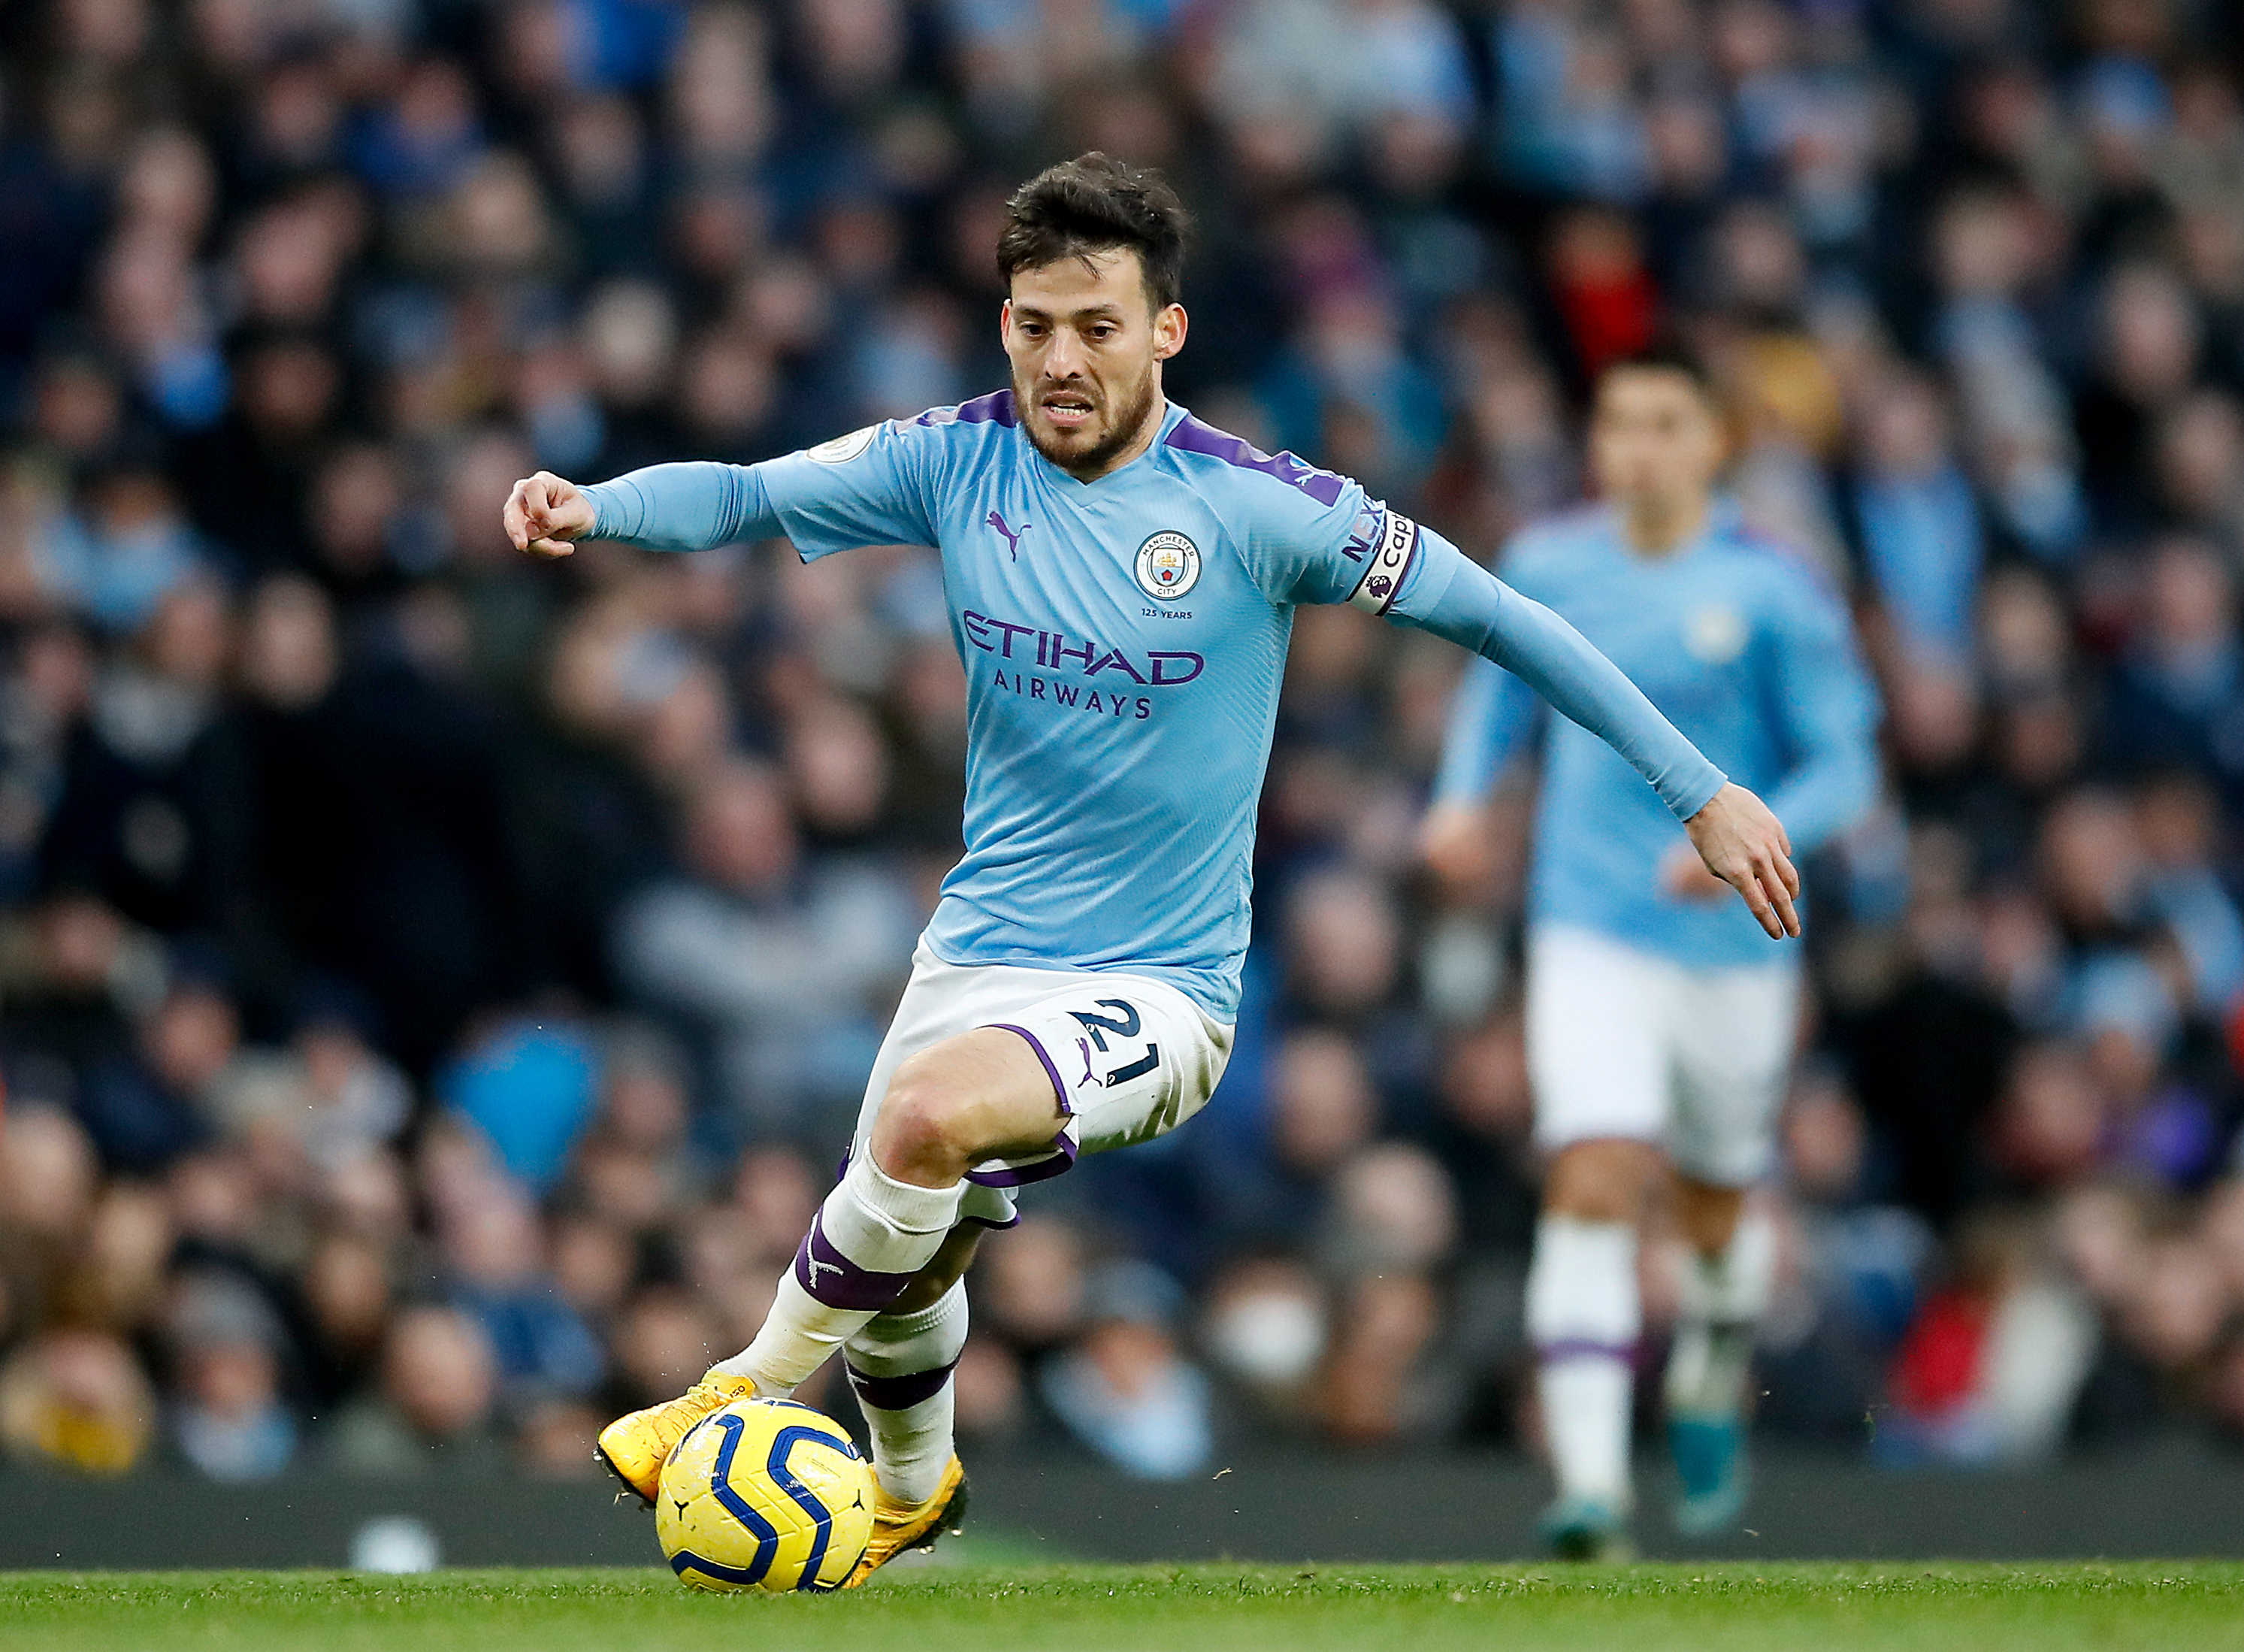 Real Madrid-Manchester City Match To Be Played At Etihad